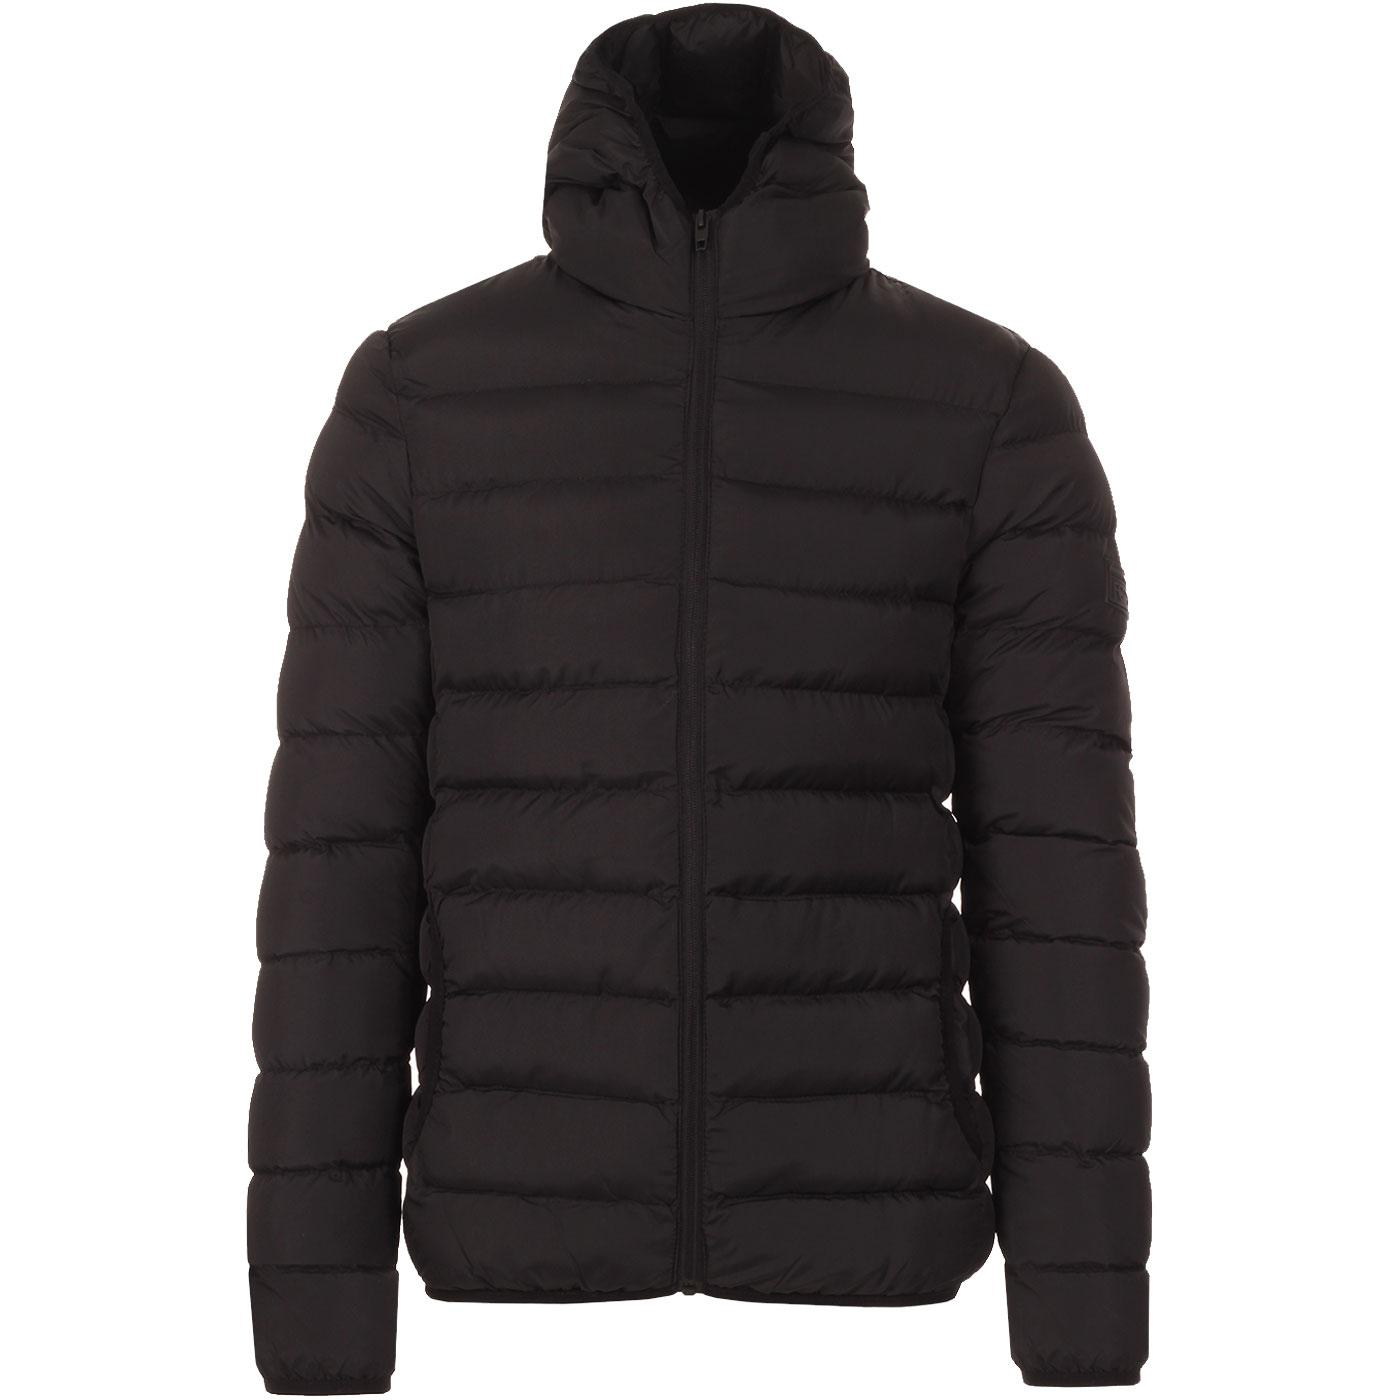 FRENCH CONNECTION Men's Hooded Padded Jacket B